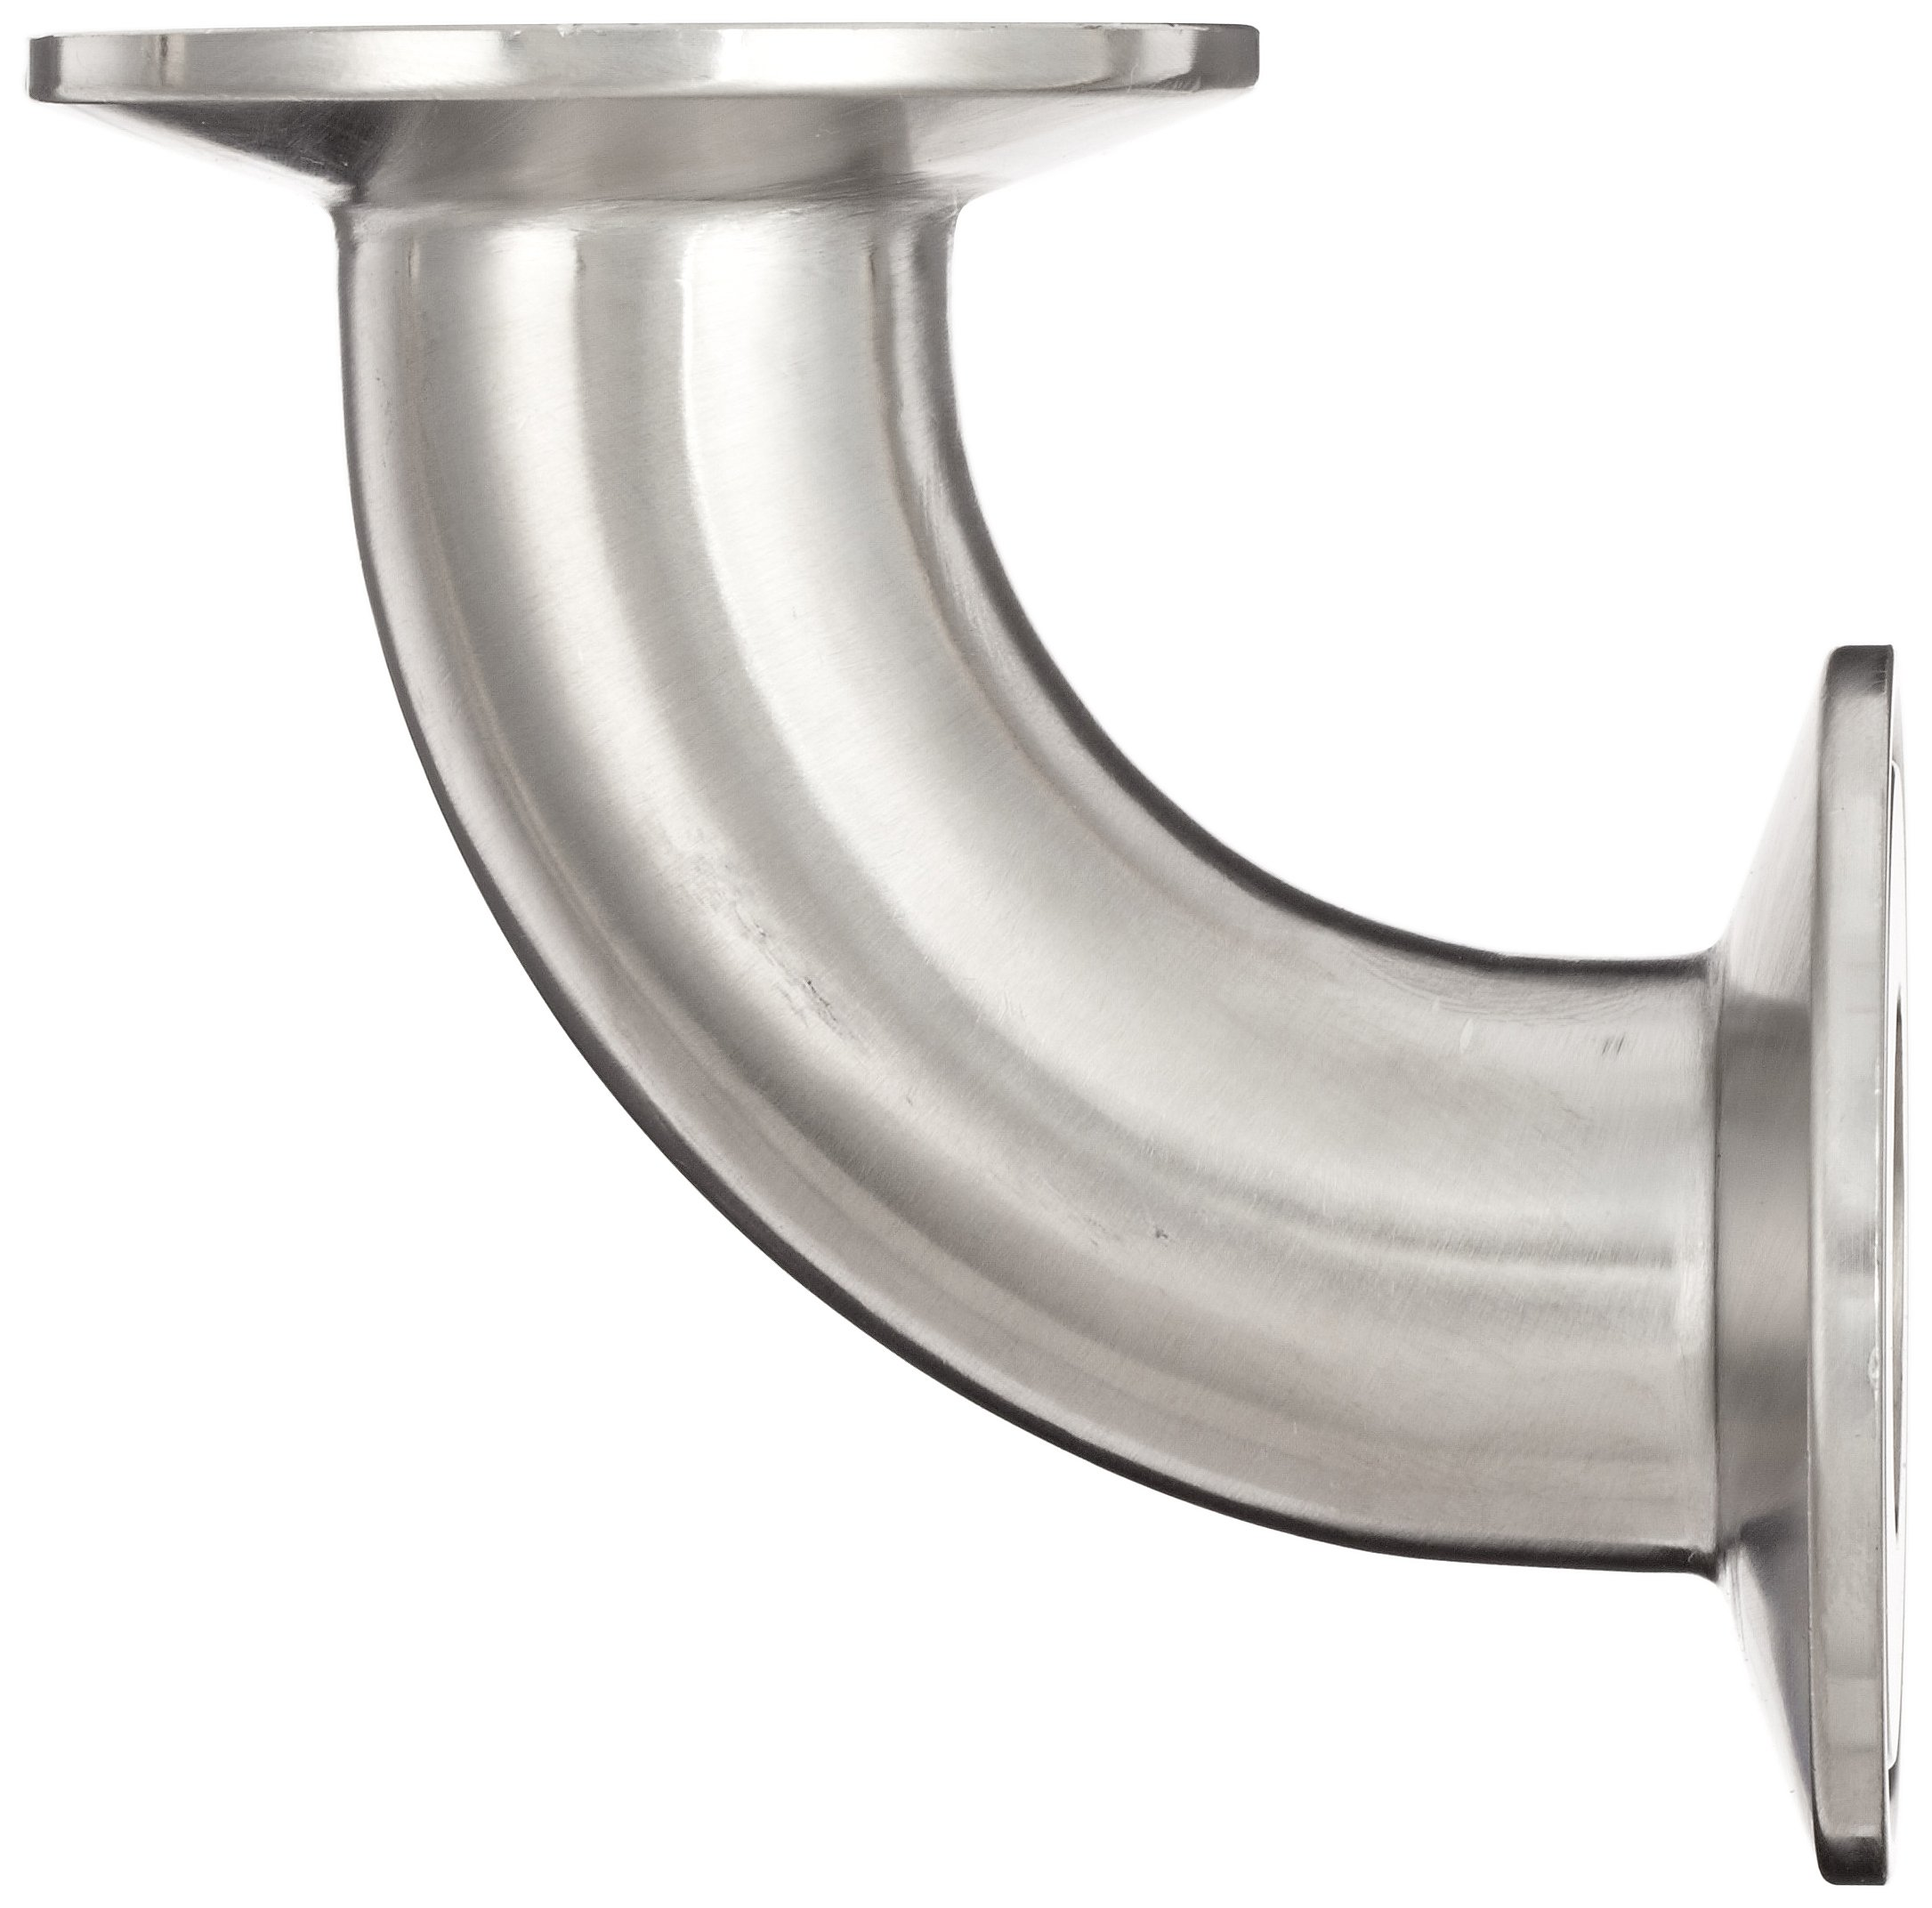 Dixon B2CMP-R100 Stainless Steel 316L Sanitary Fitting, 90 Degree Clamp Elbow, 1'' Tube OD by Dixon Valve & Coupling (Image #2)